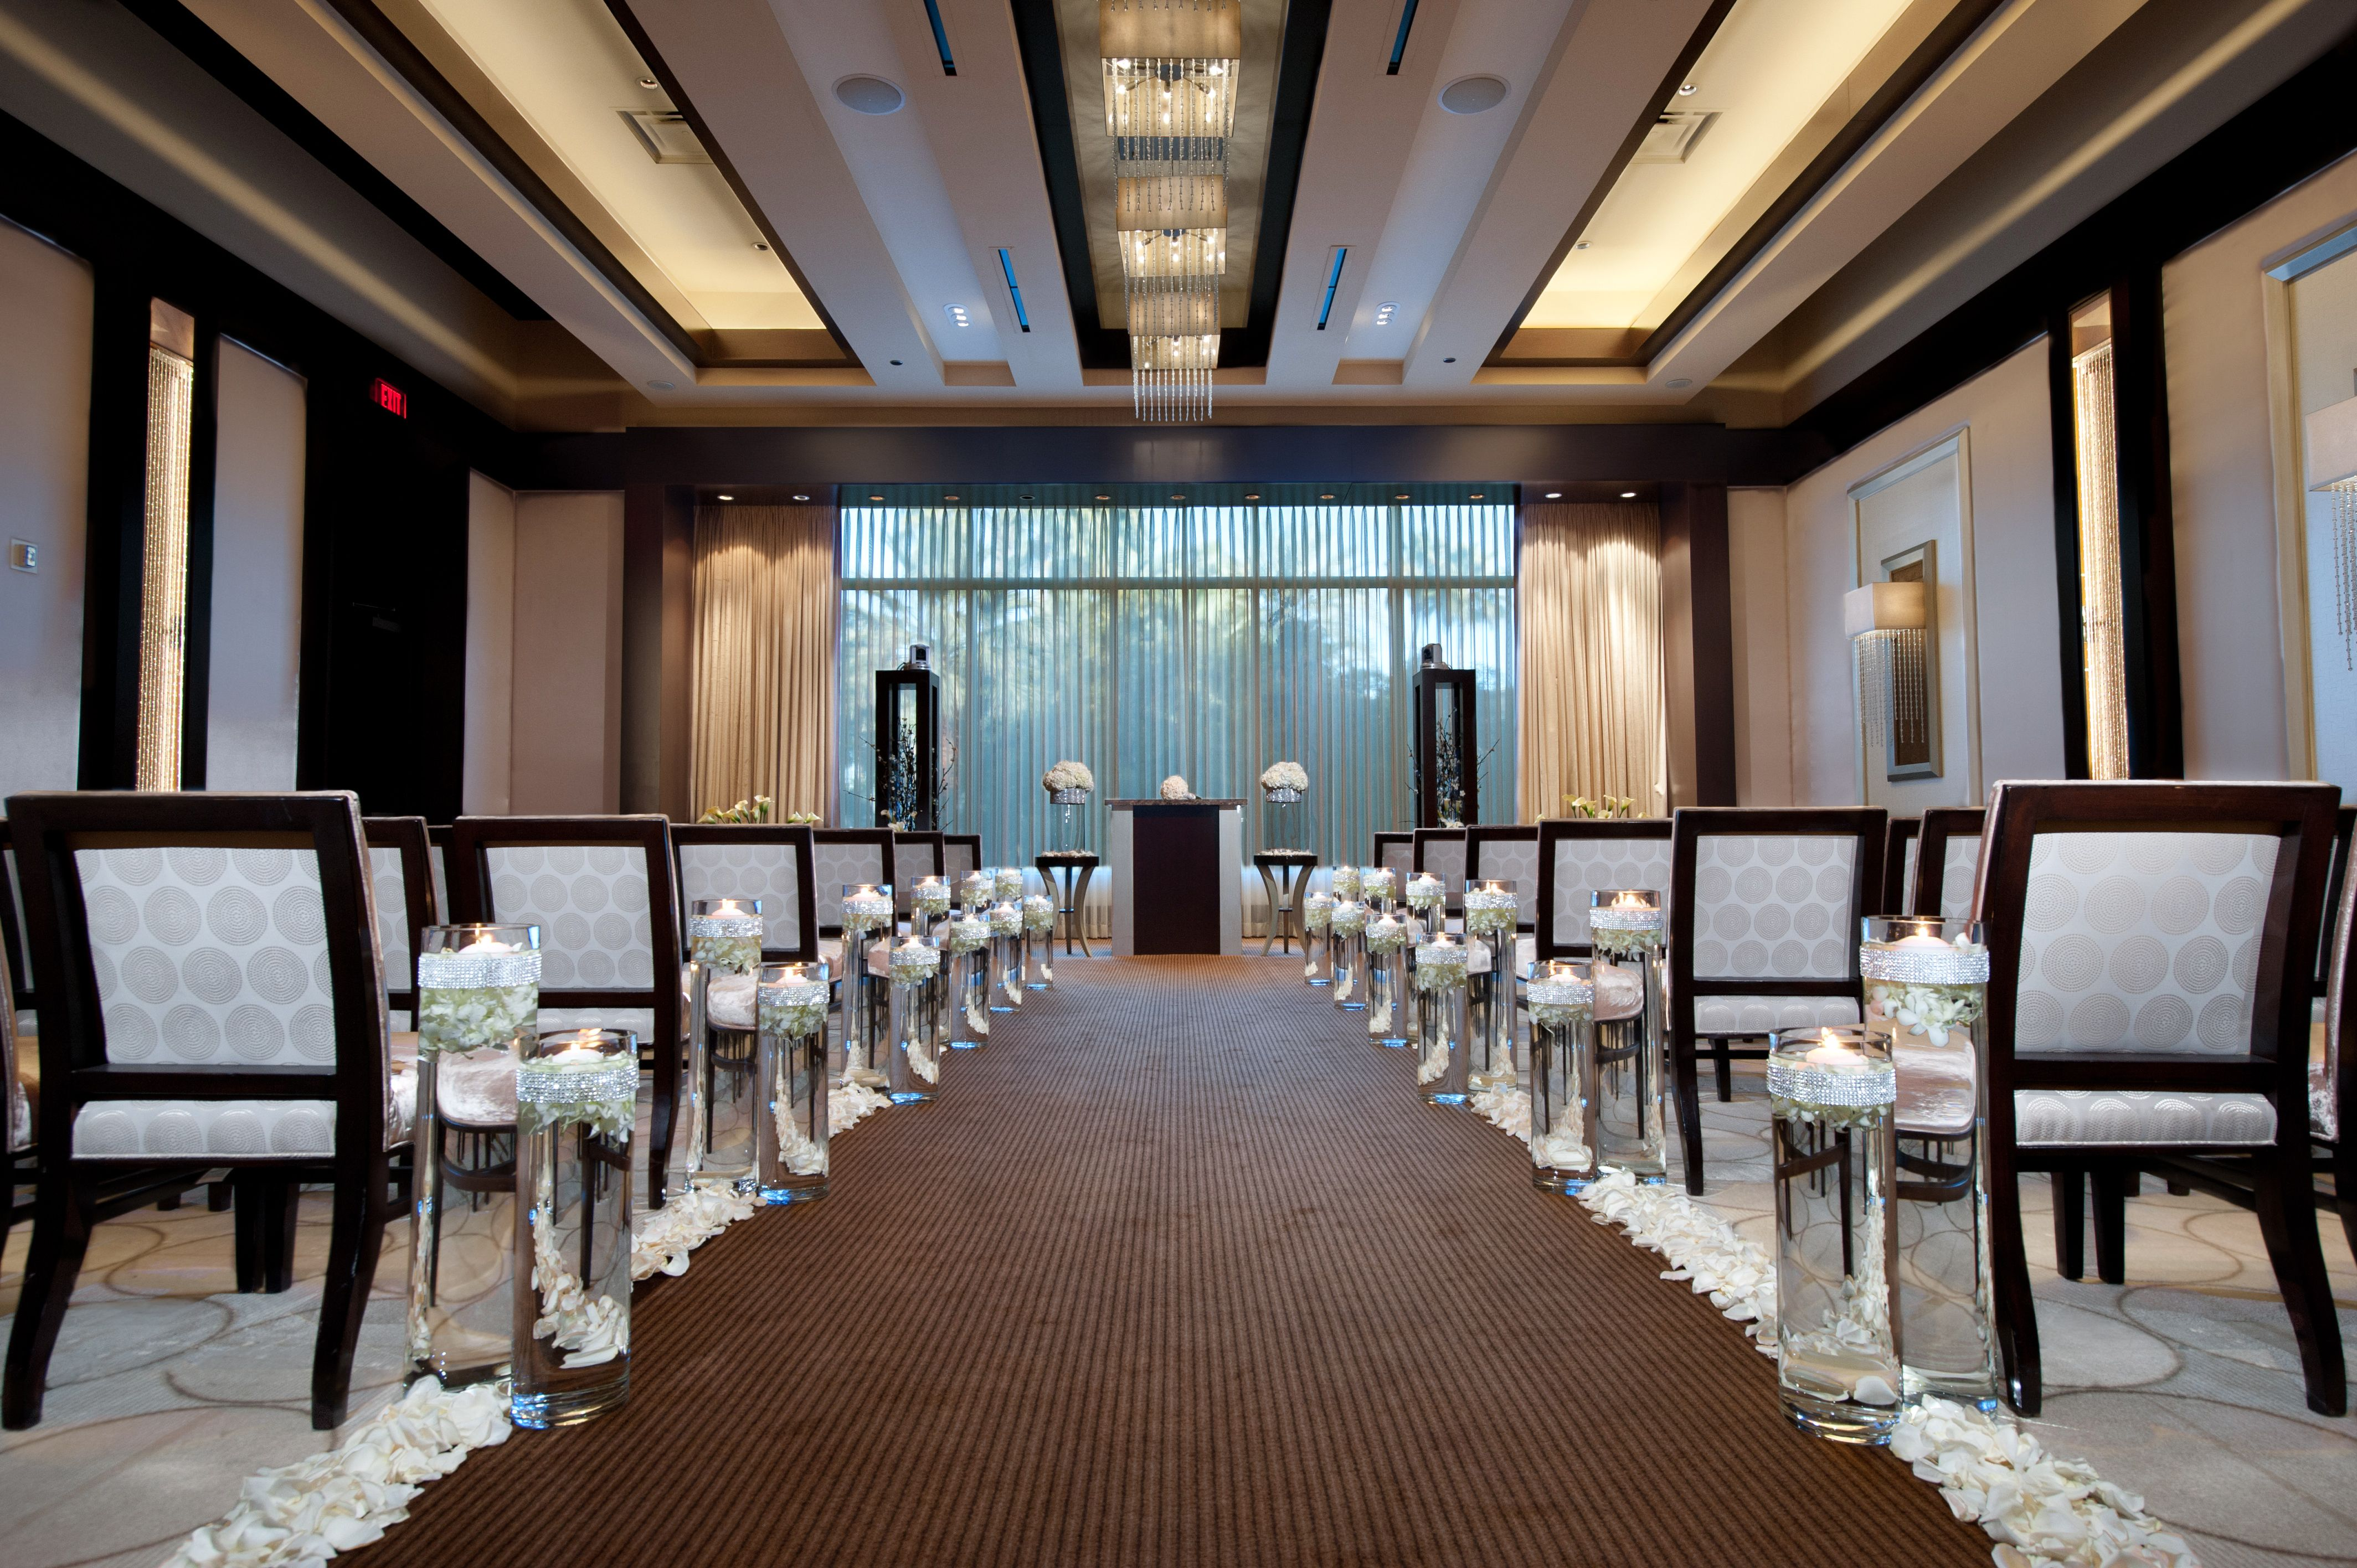 The Wedding Chapel At Mandalay Bay Is Both Modern And Traditional Venue To Suit Your Needs